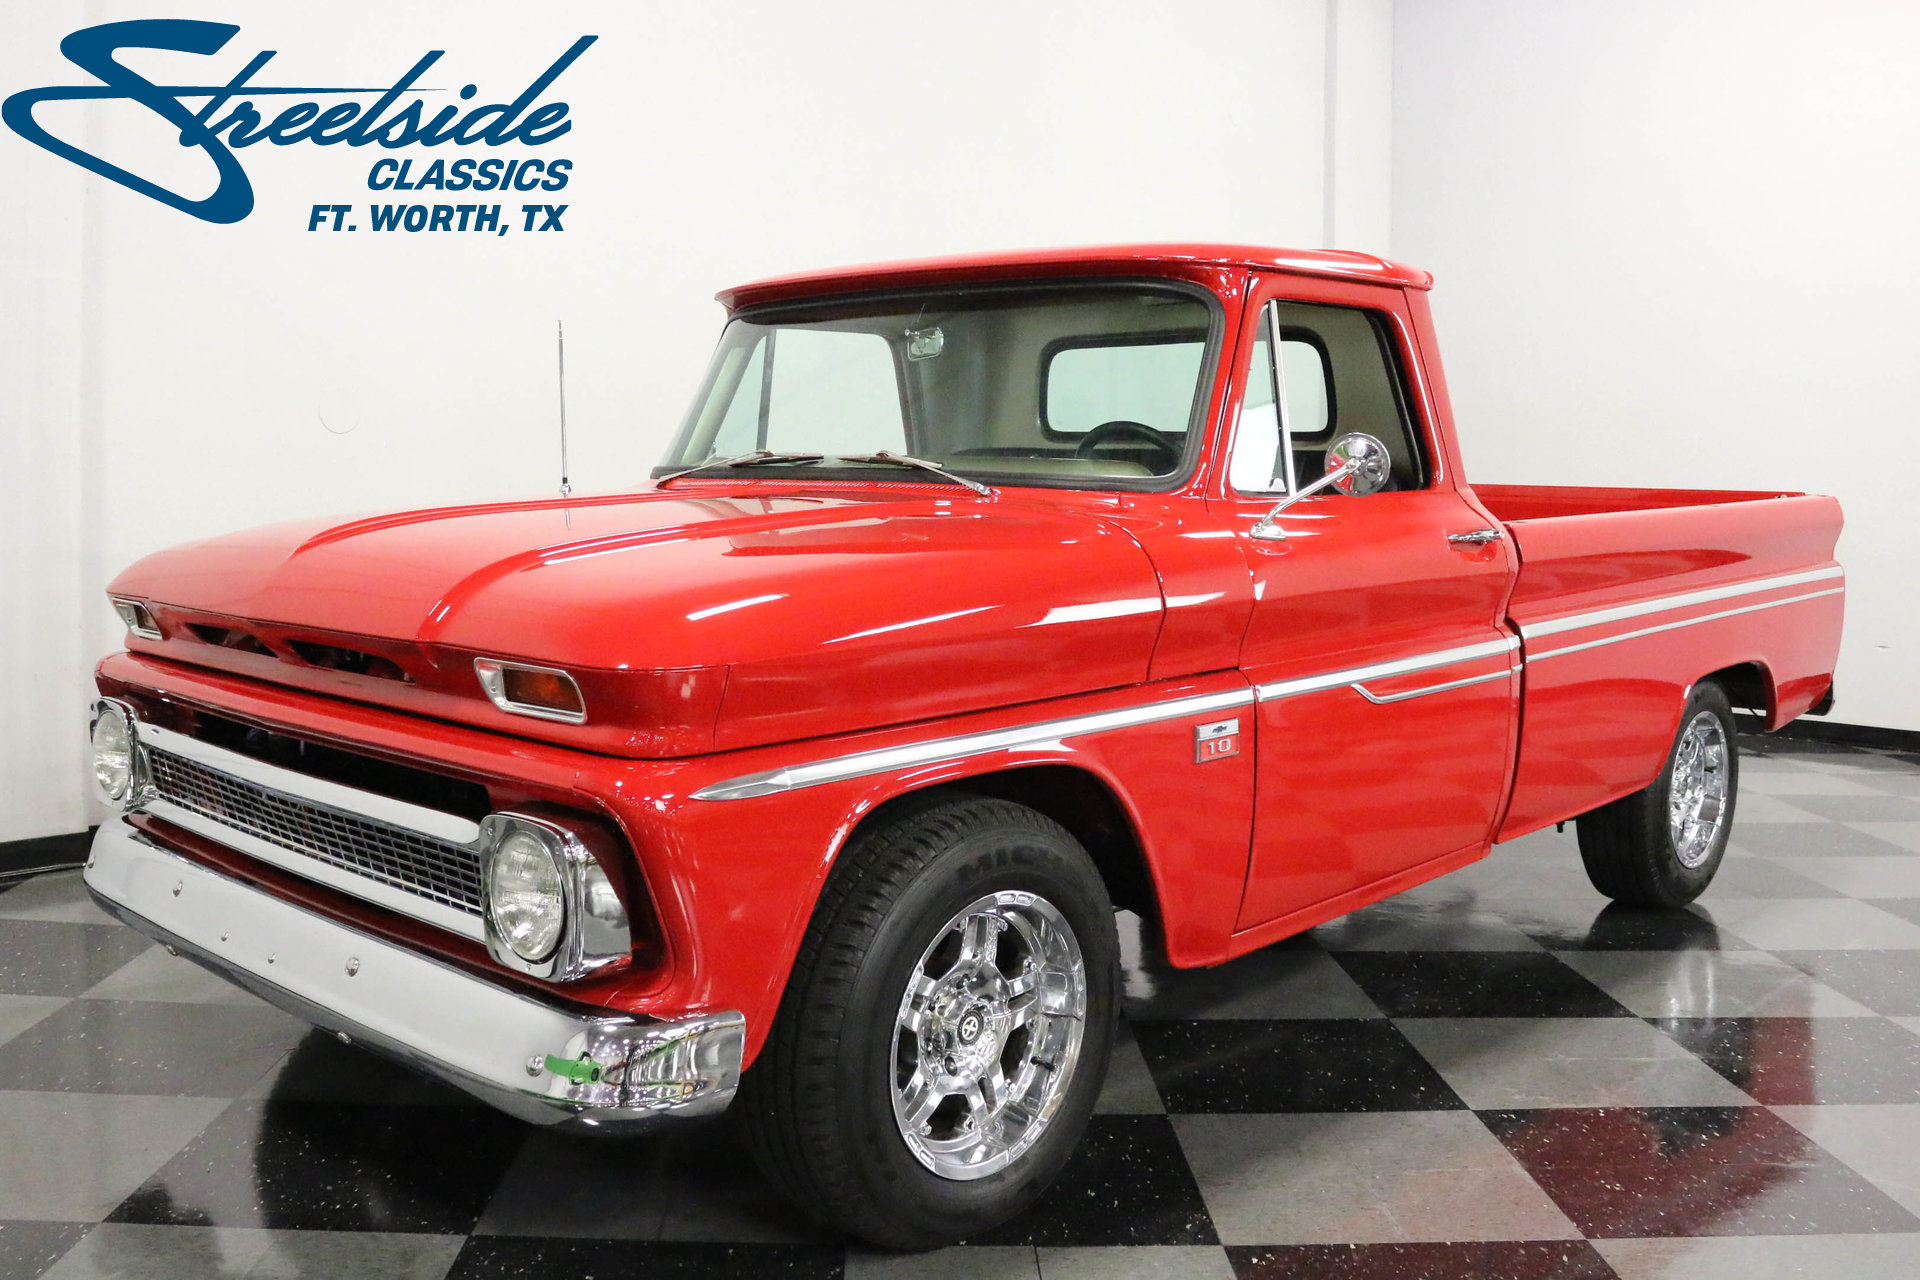 1966 Chevrolet C10 Streetside Classics The Nations Trusted Truck For Sale Spincar View Play Video